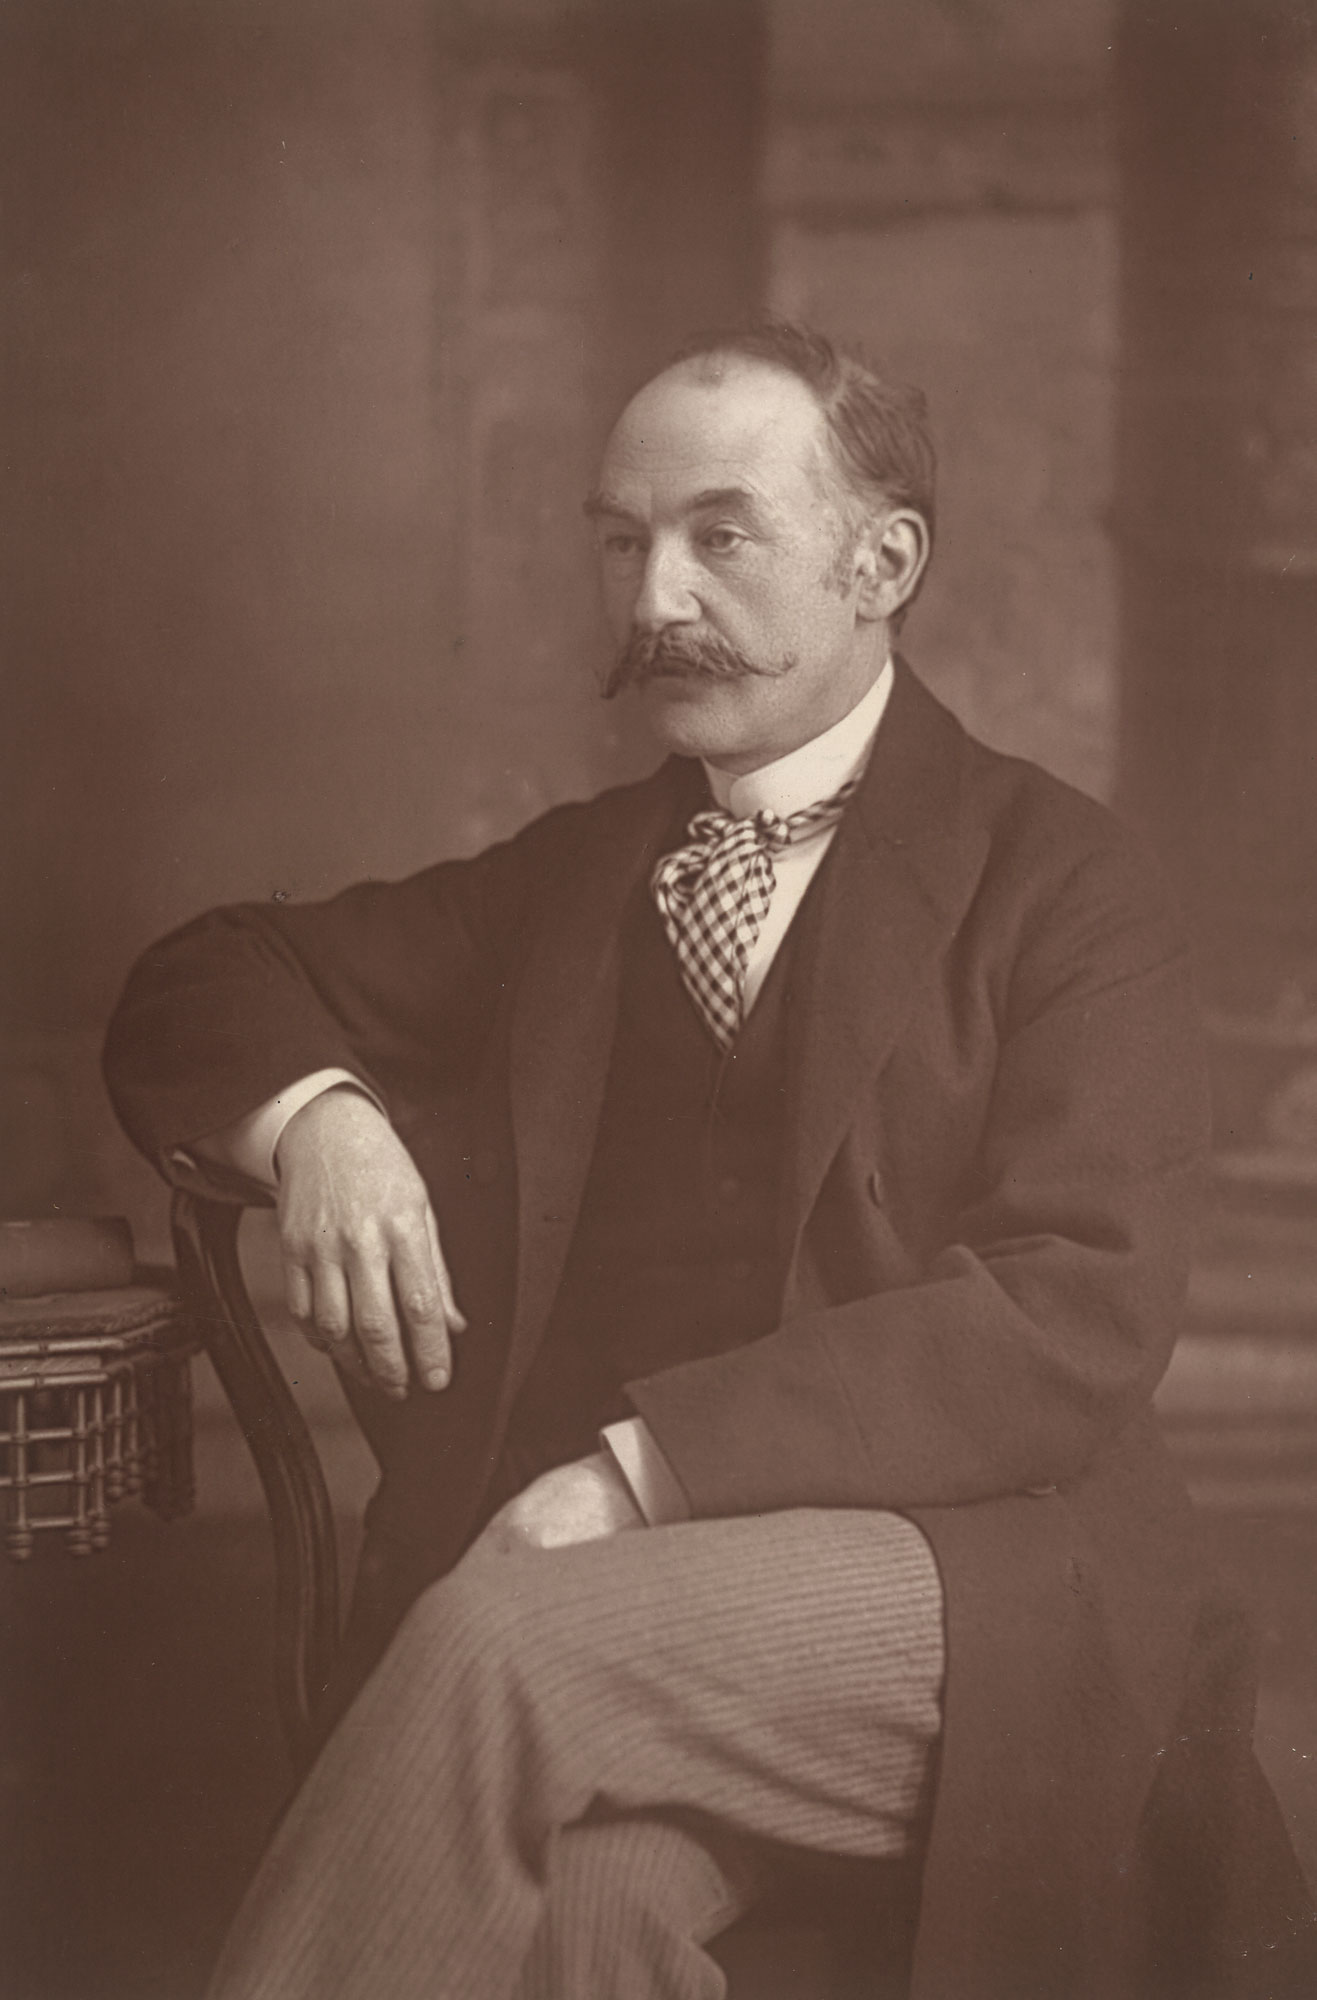 Thomas Hardy, author of Tess of the d'Urbervilles, Jude the Obscure and Far From The Madding Crowd. Portrait photograph by W. & D. Downey.